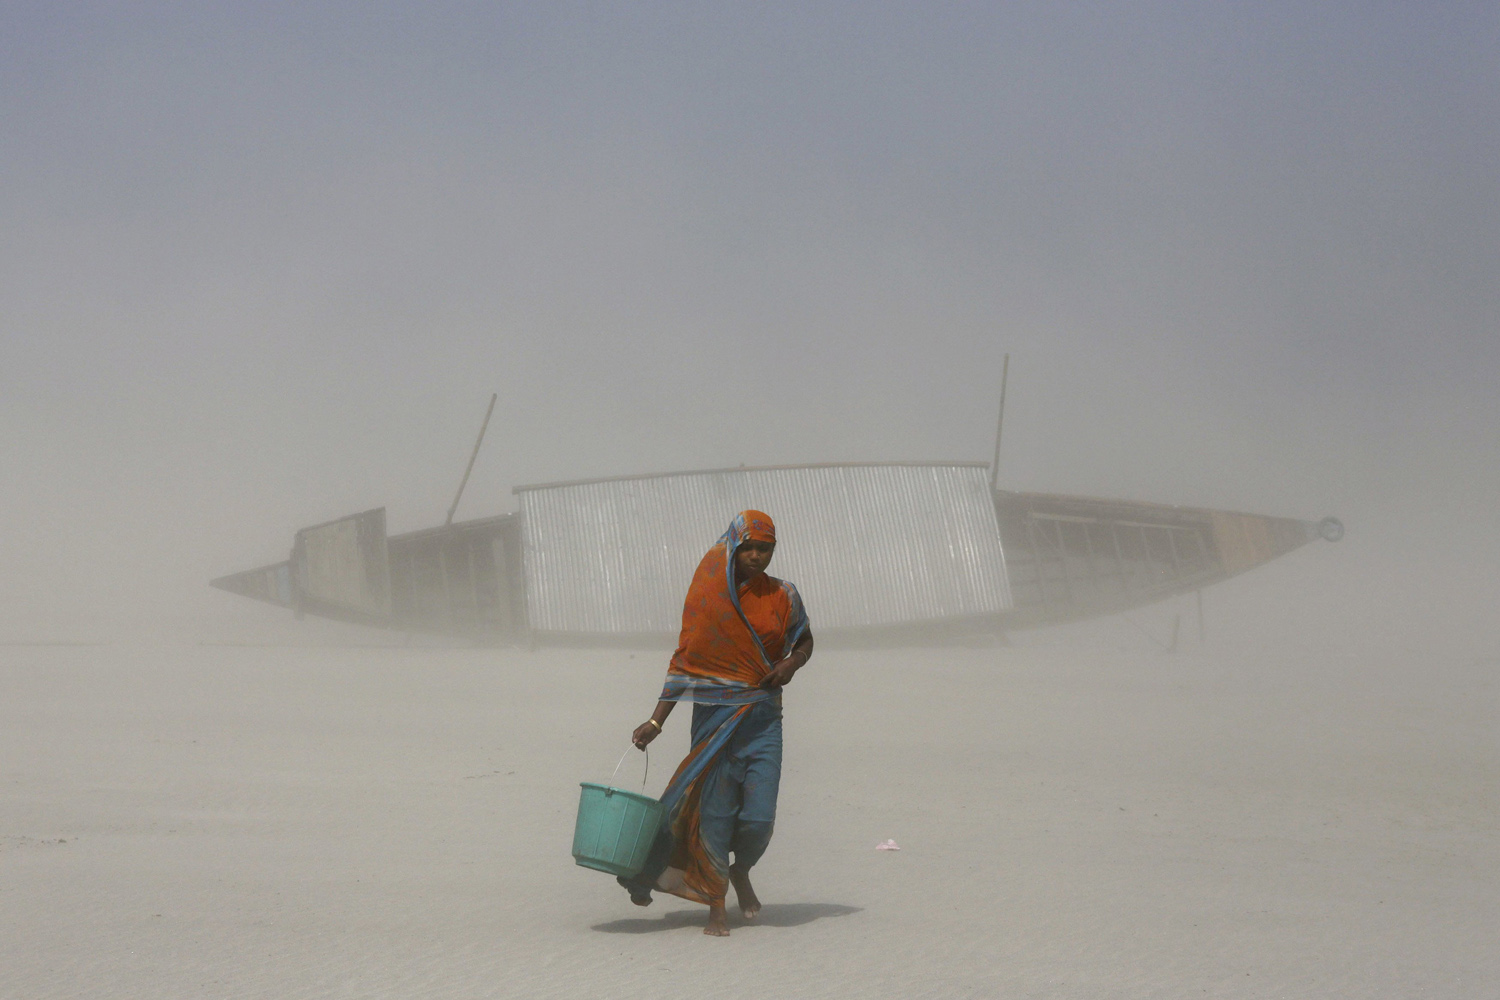 Mar. 21, 2014. An Indian woman carries an empty bucket as she walks on dry mud against blowing sand, along the Brahmaputra river on the eve of World Water Day in Gauhati, India.